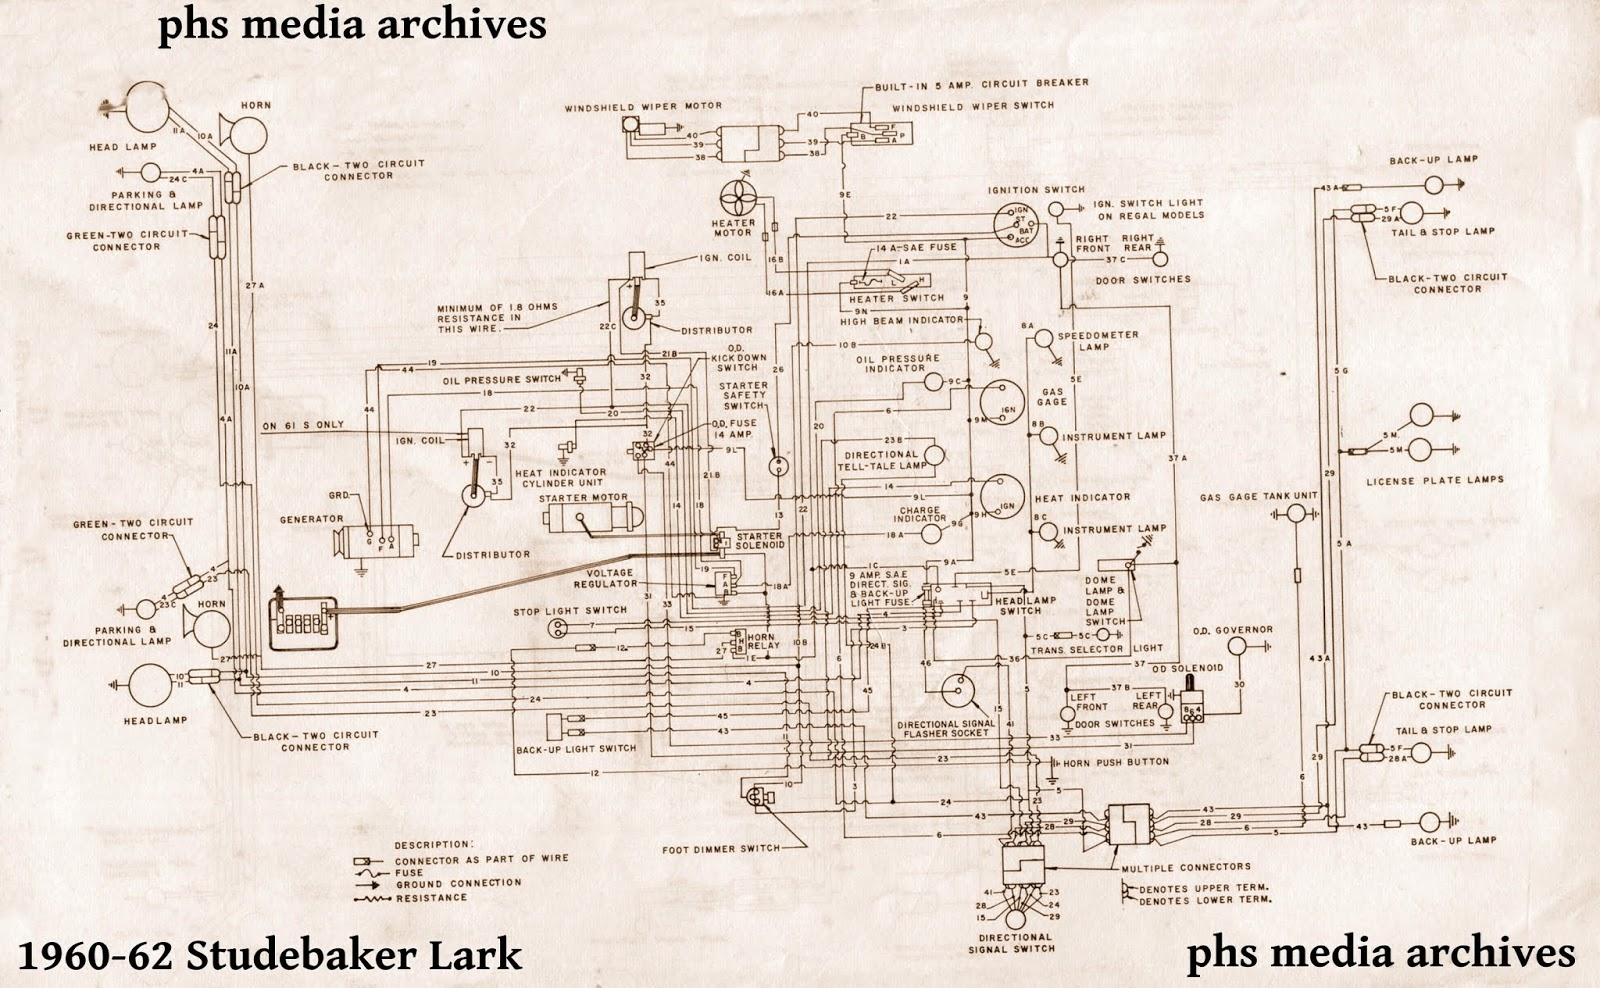 shown here are wiring schematics for the last studebakers made  they focus  on the lark and cruiser models  the wiring diagrams cover the years from  1960-